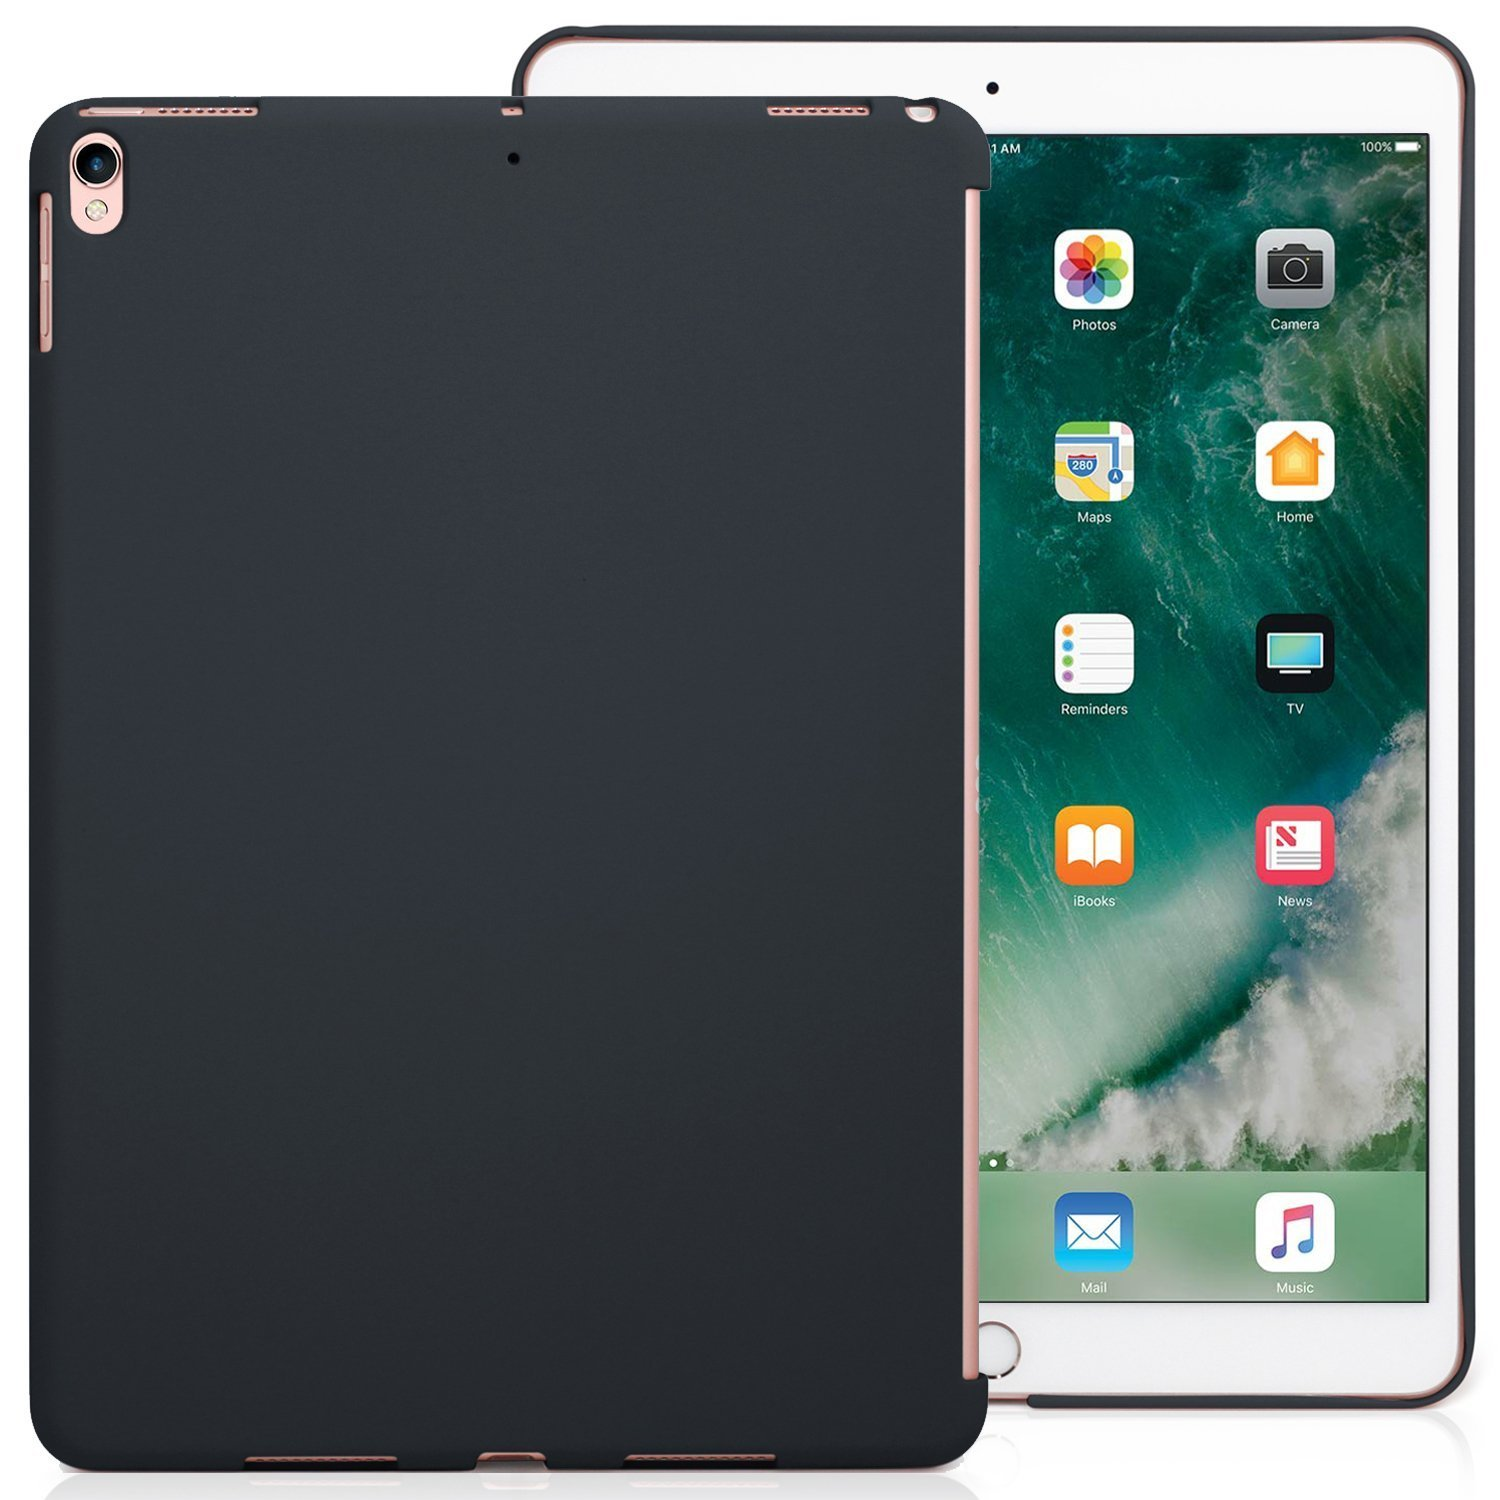 KHOMO iPad Pro 10.5 Inch Charcoal Gray Color Case - Companion Cover - Perfect match for Apple Smart keyboard and Cover. by KHOMO